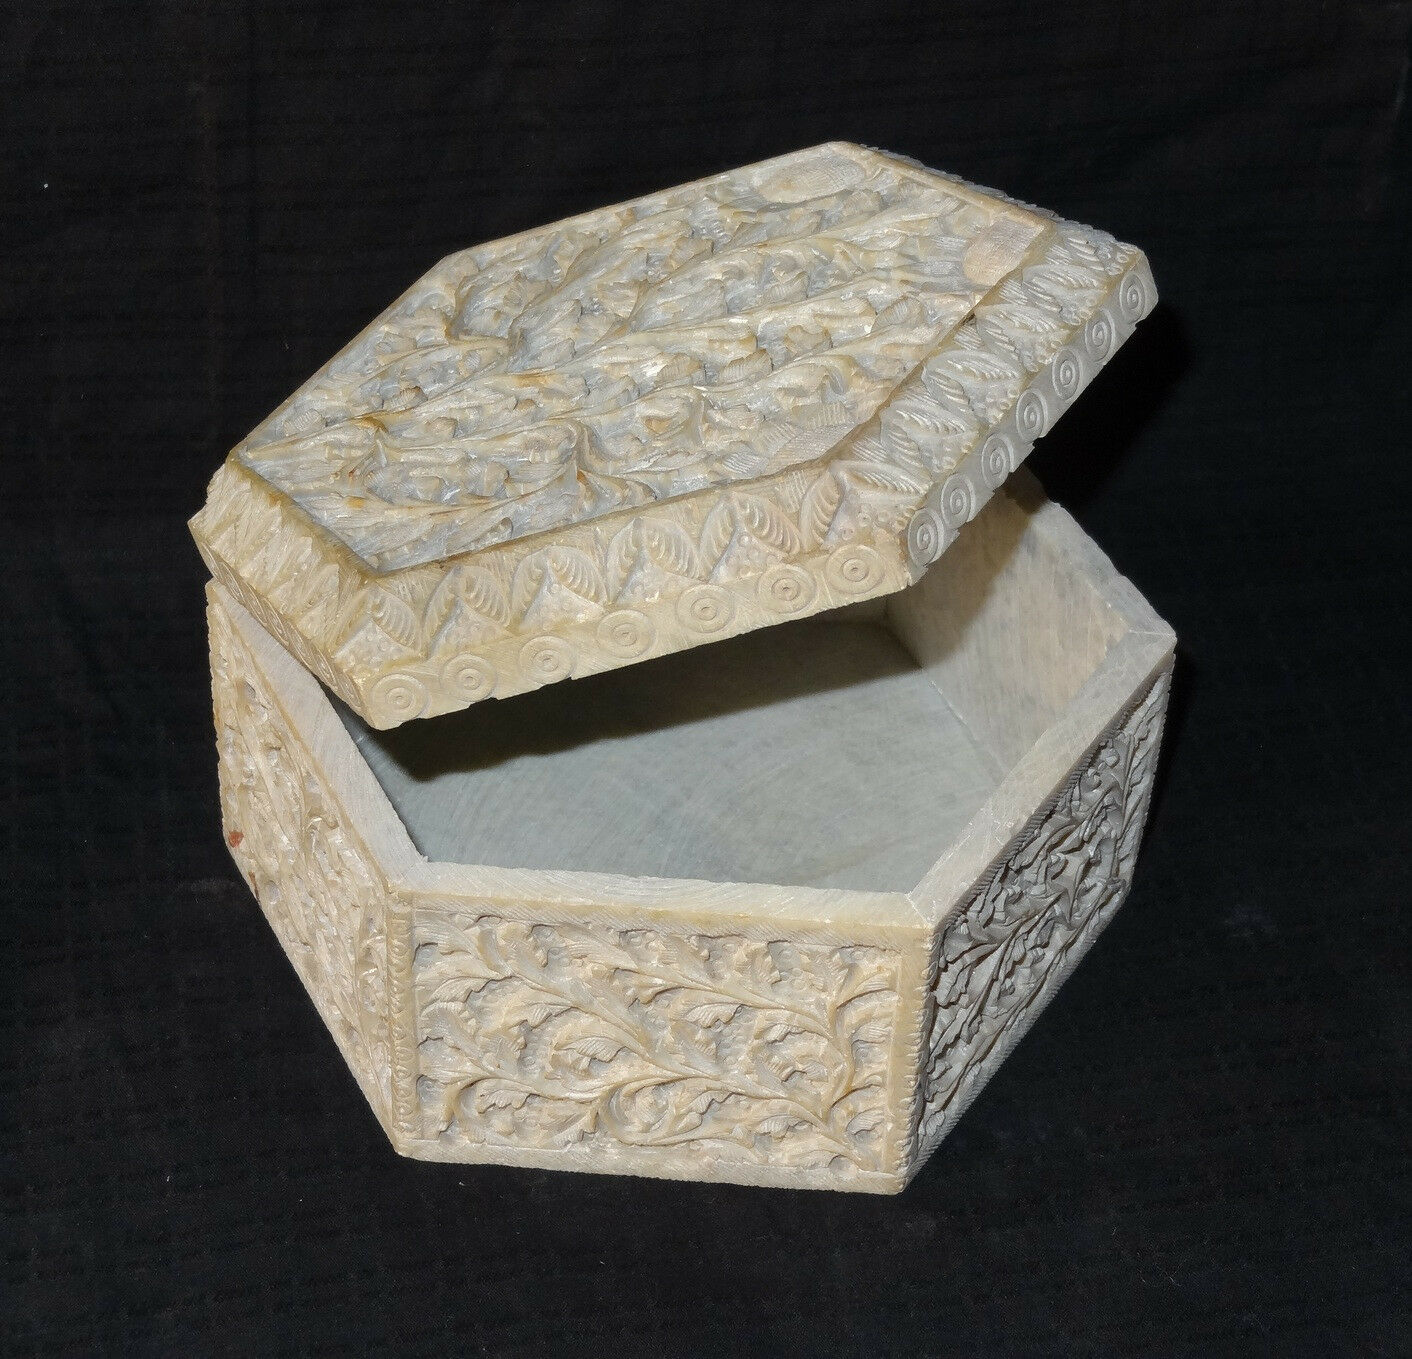 Marble Jewelry Box Trinket Gorara hand Home Decor Handmade Eid Ramzan SpeciGifts